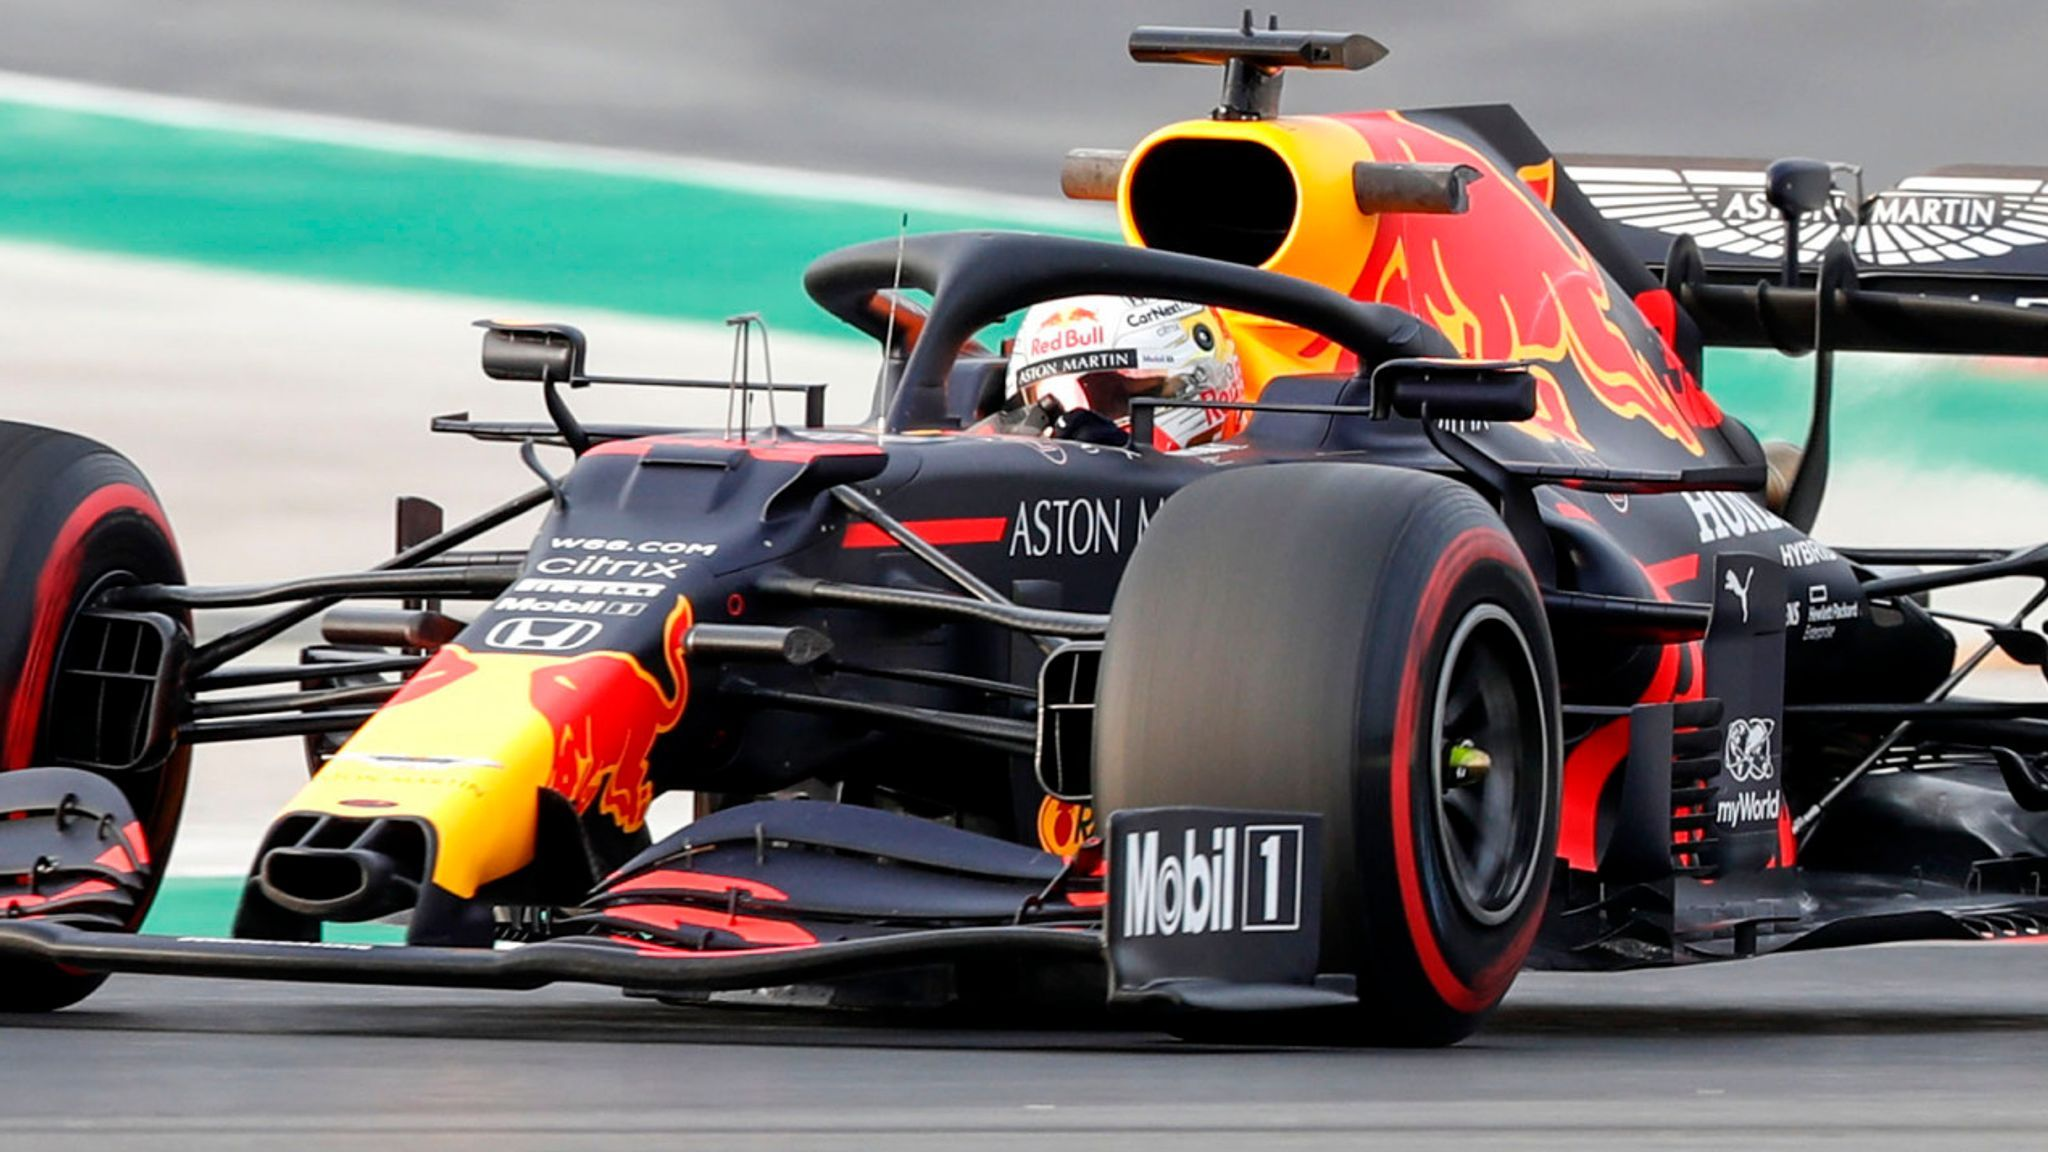 Max Verstappen sets early pace at Turkish GP, Lewis Hamilton only fourth after Practice Two